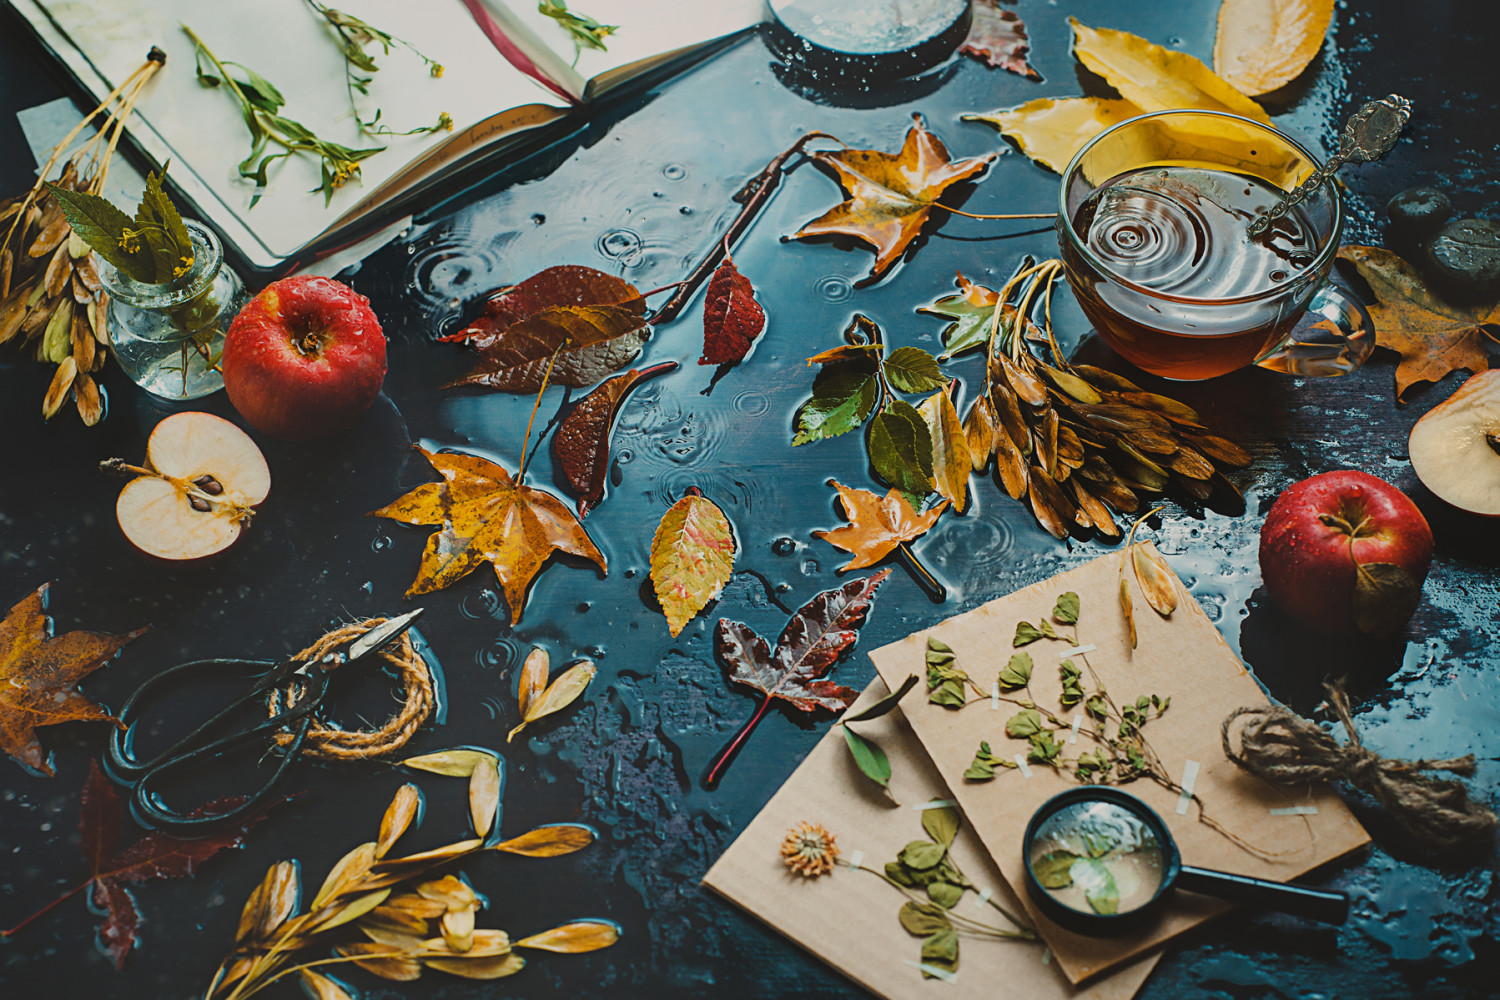 Tutorial: How to Make it Rain on Your Still Life in the Studio